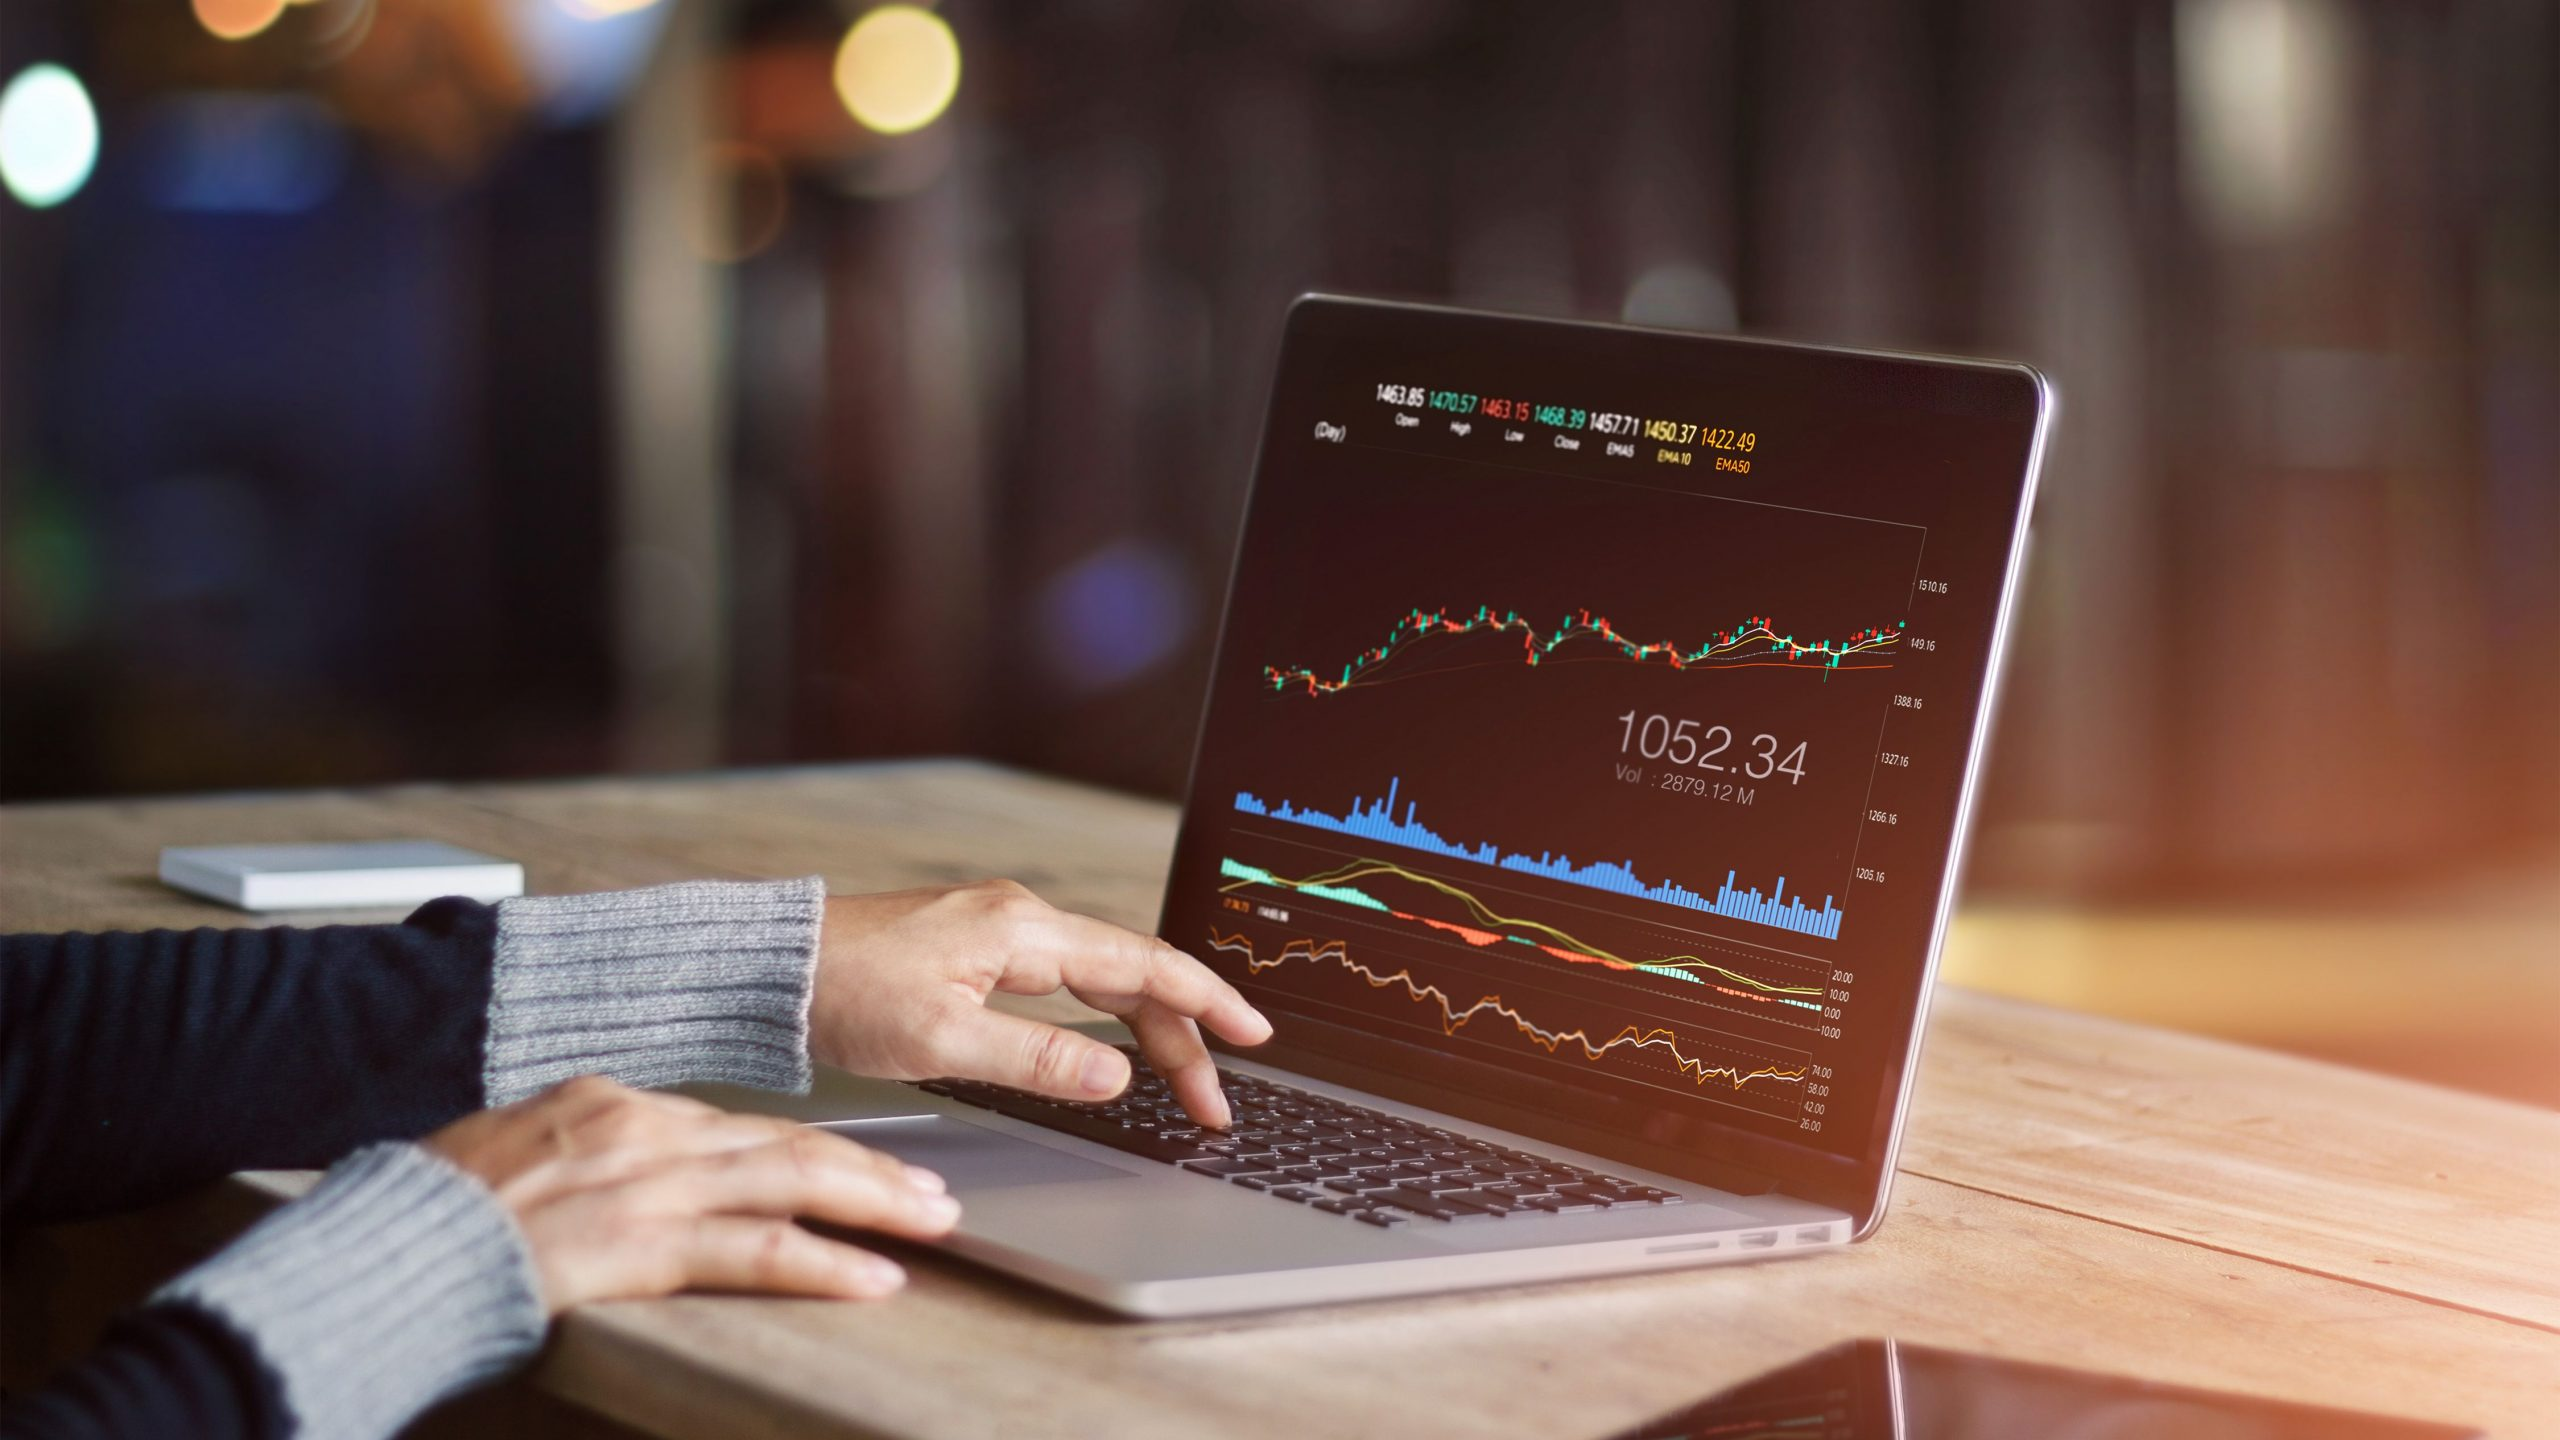 Trading is buying and selling stocks